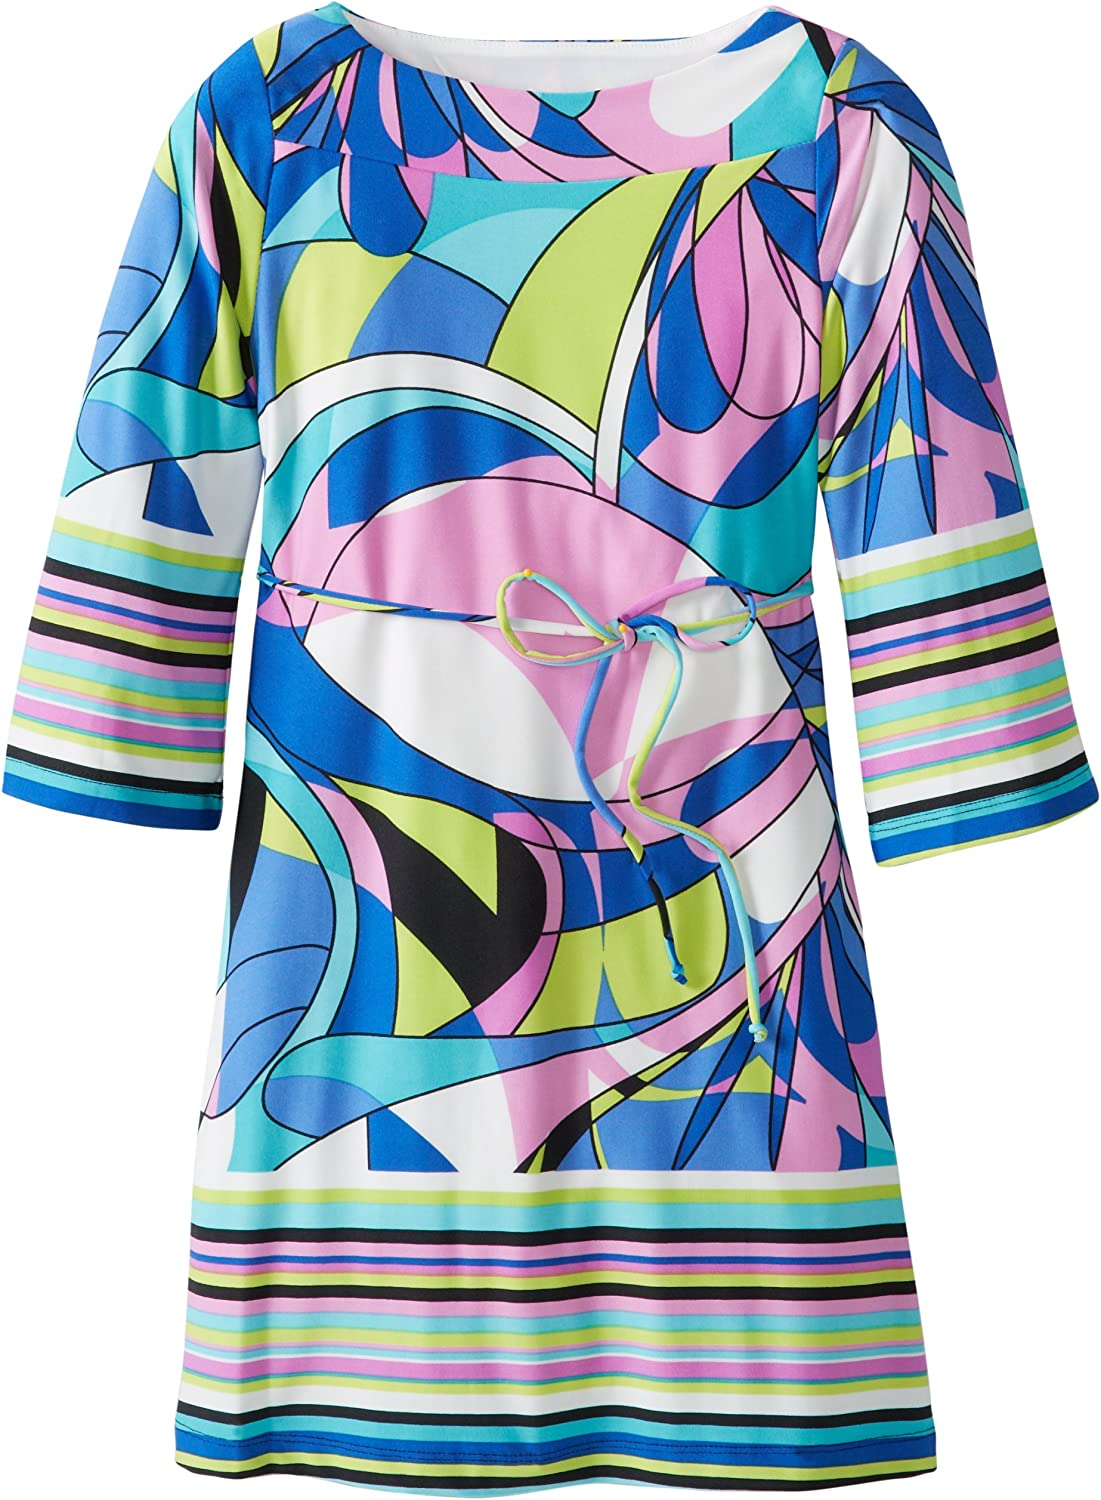 My Michelle Big Girls' 3/4 Sleeve Boat Neck with Tie Back